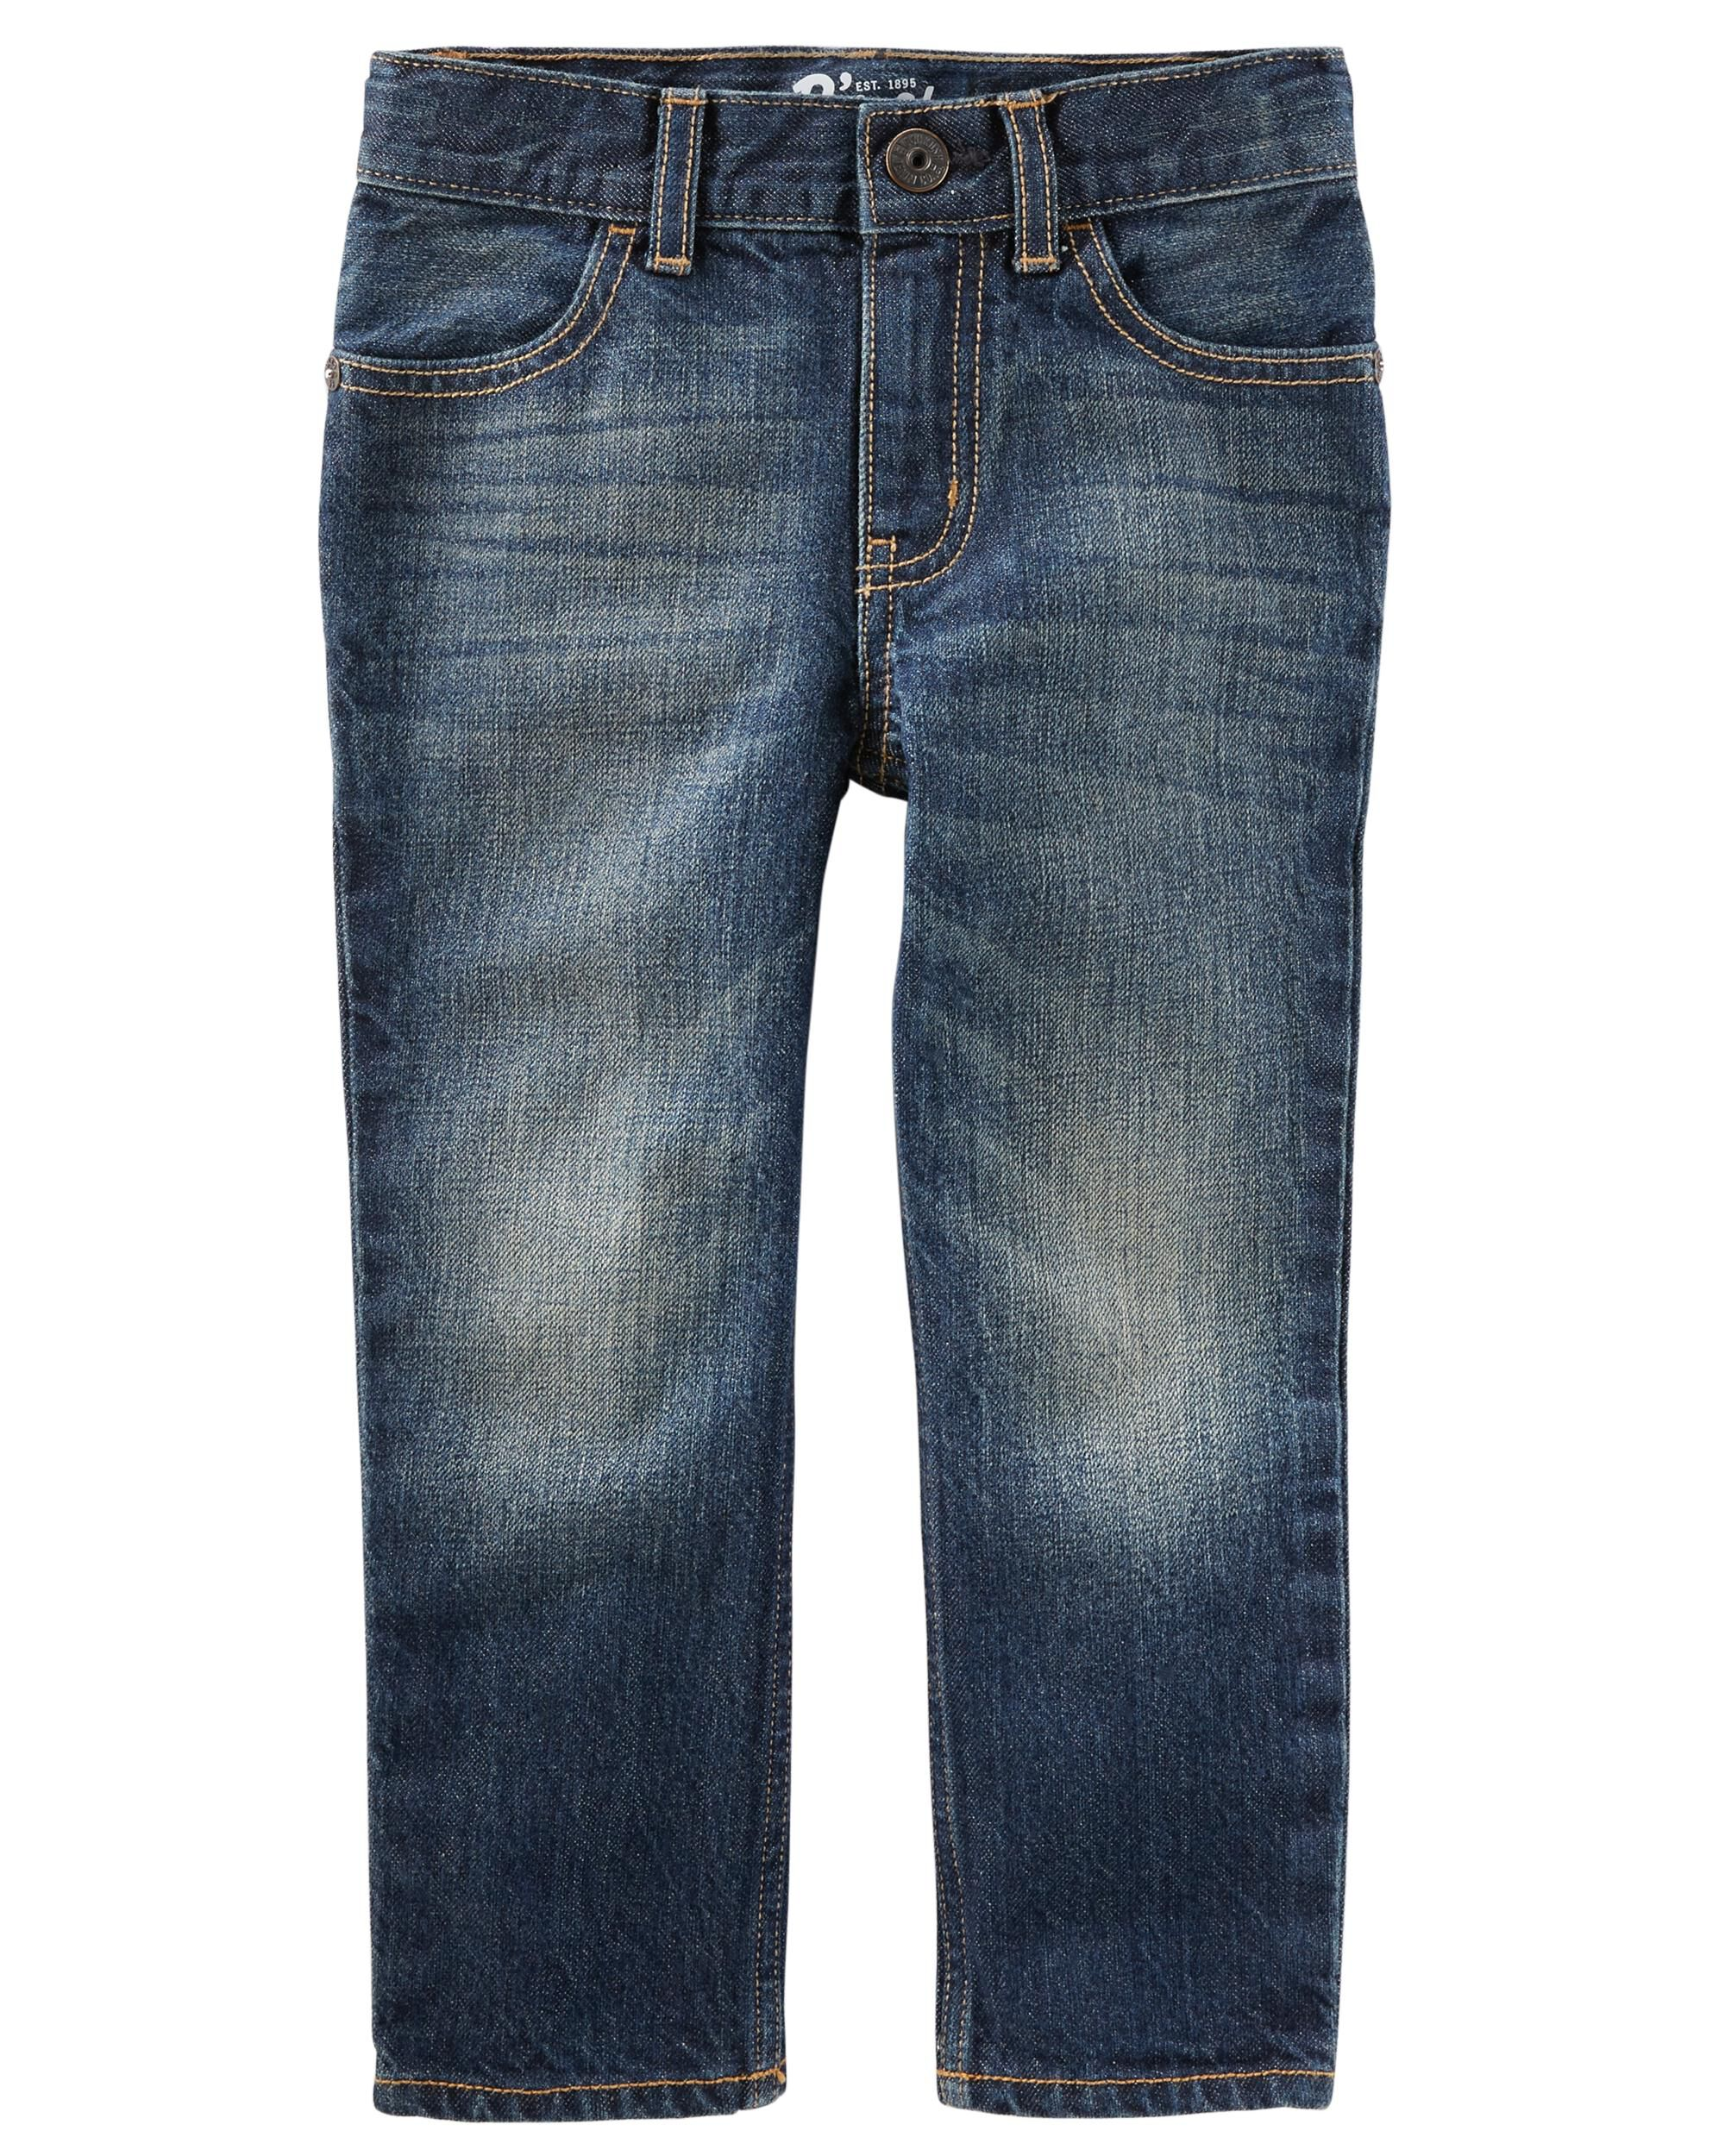 *DOORBUSTER* Straight Jeans - Authentic Tinted Wash